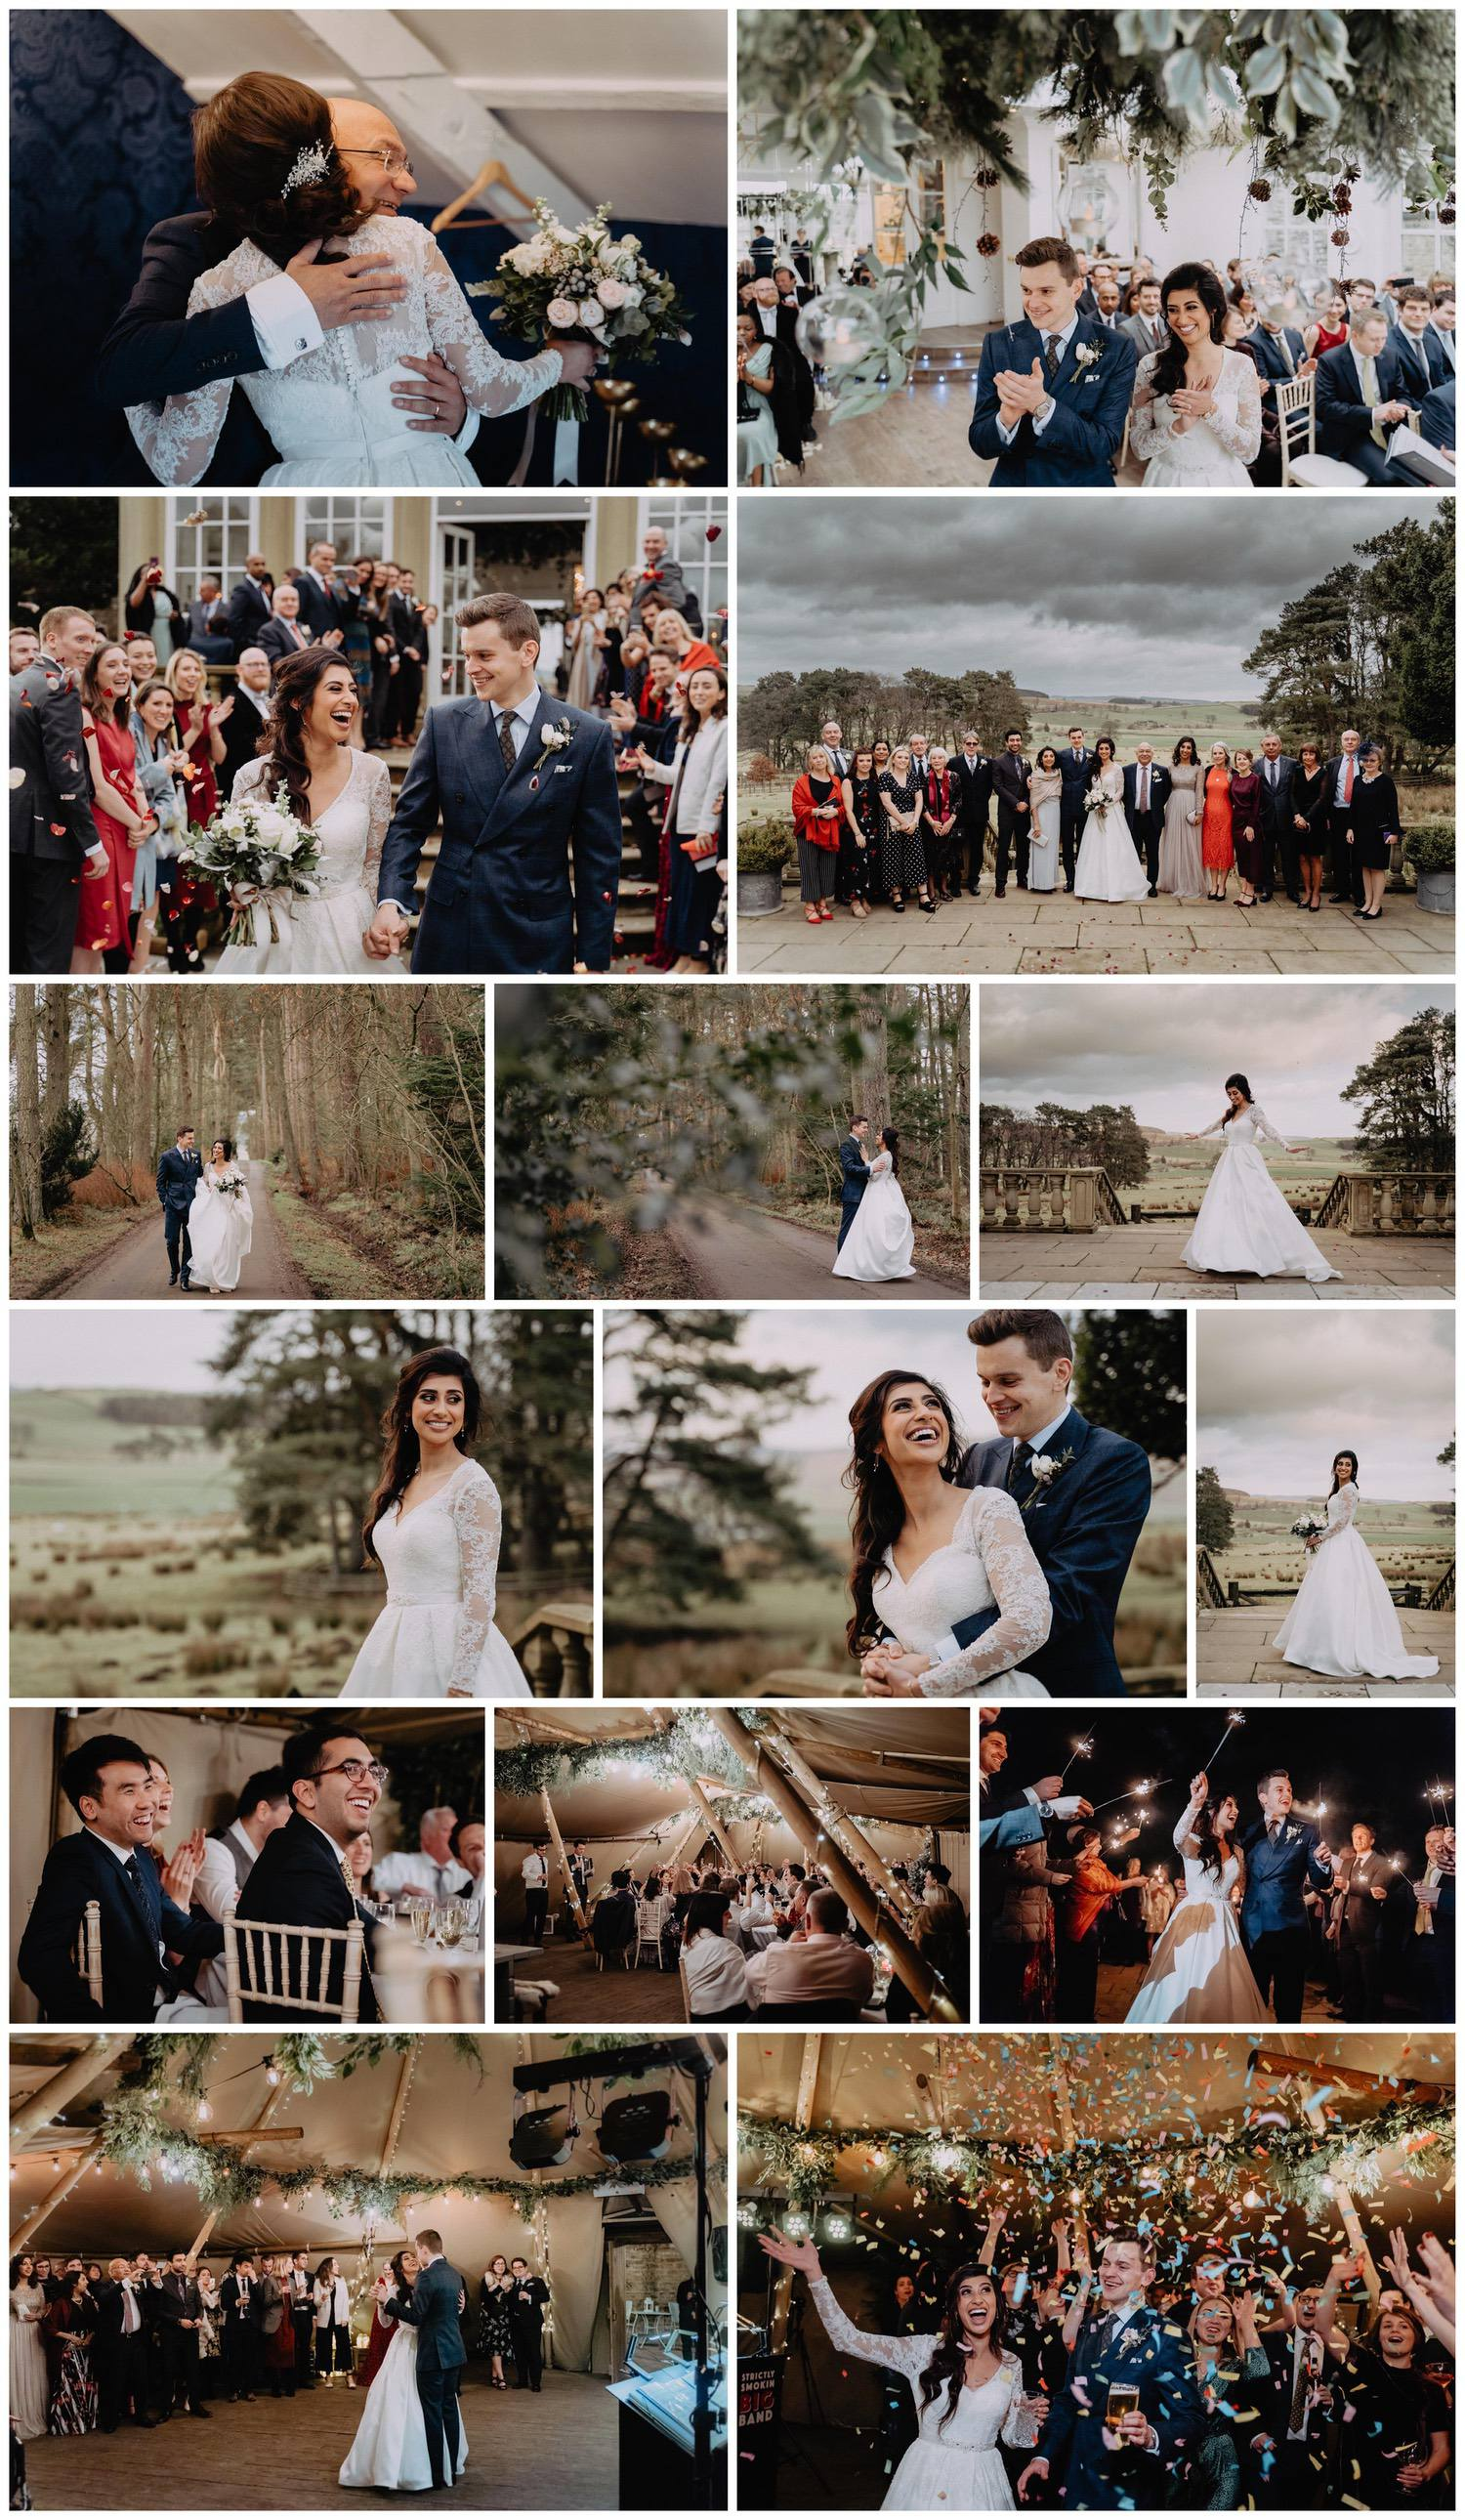 Woodhill-Hall-Wedding-Video.jpg